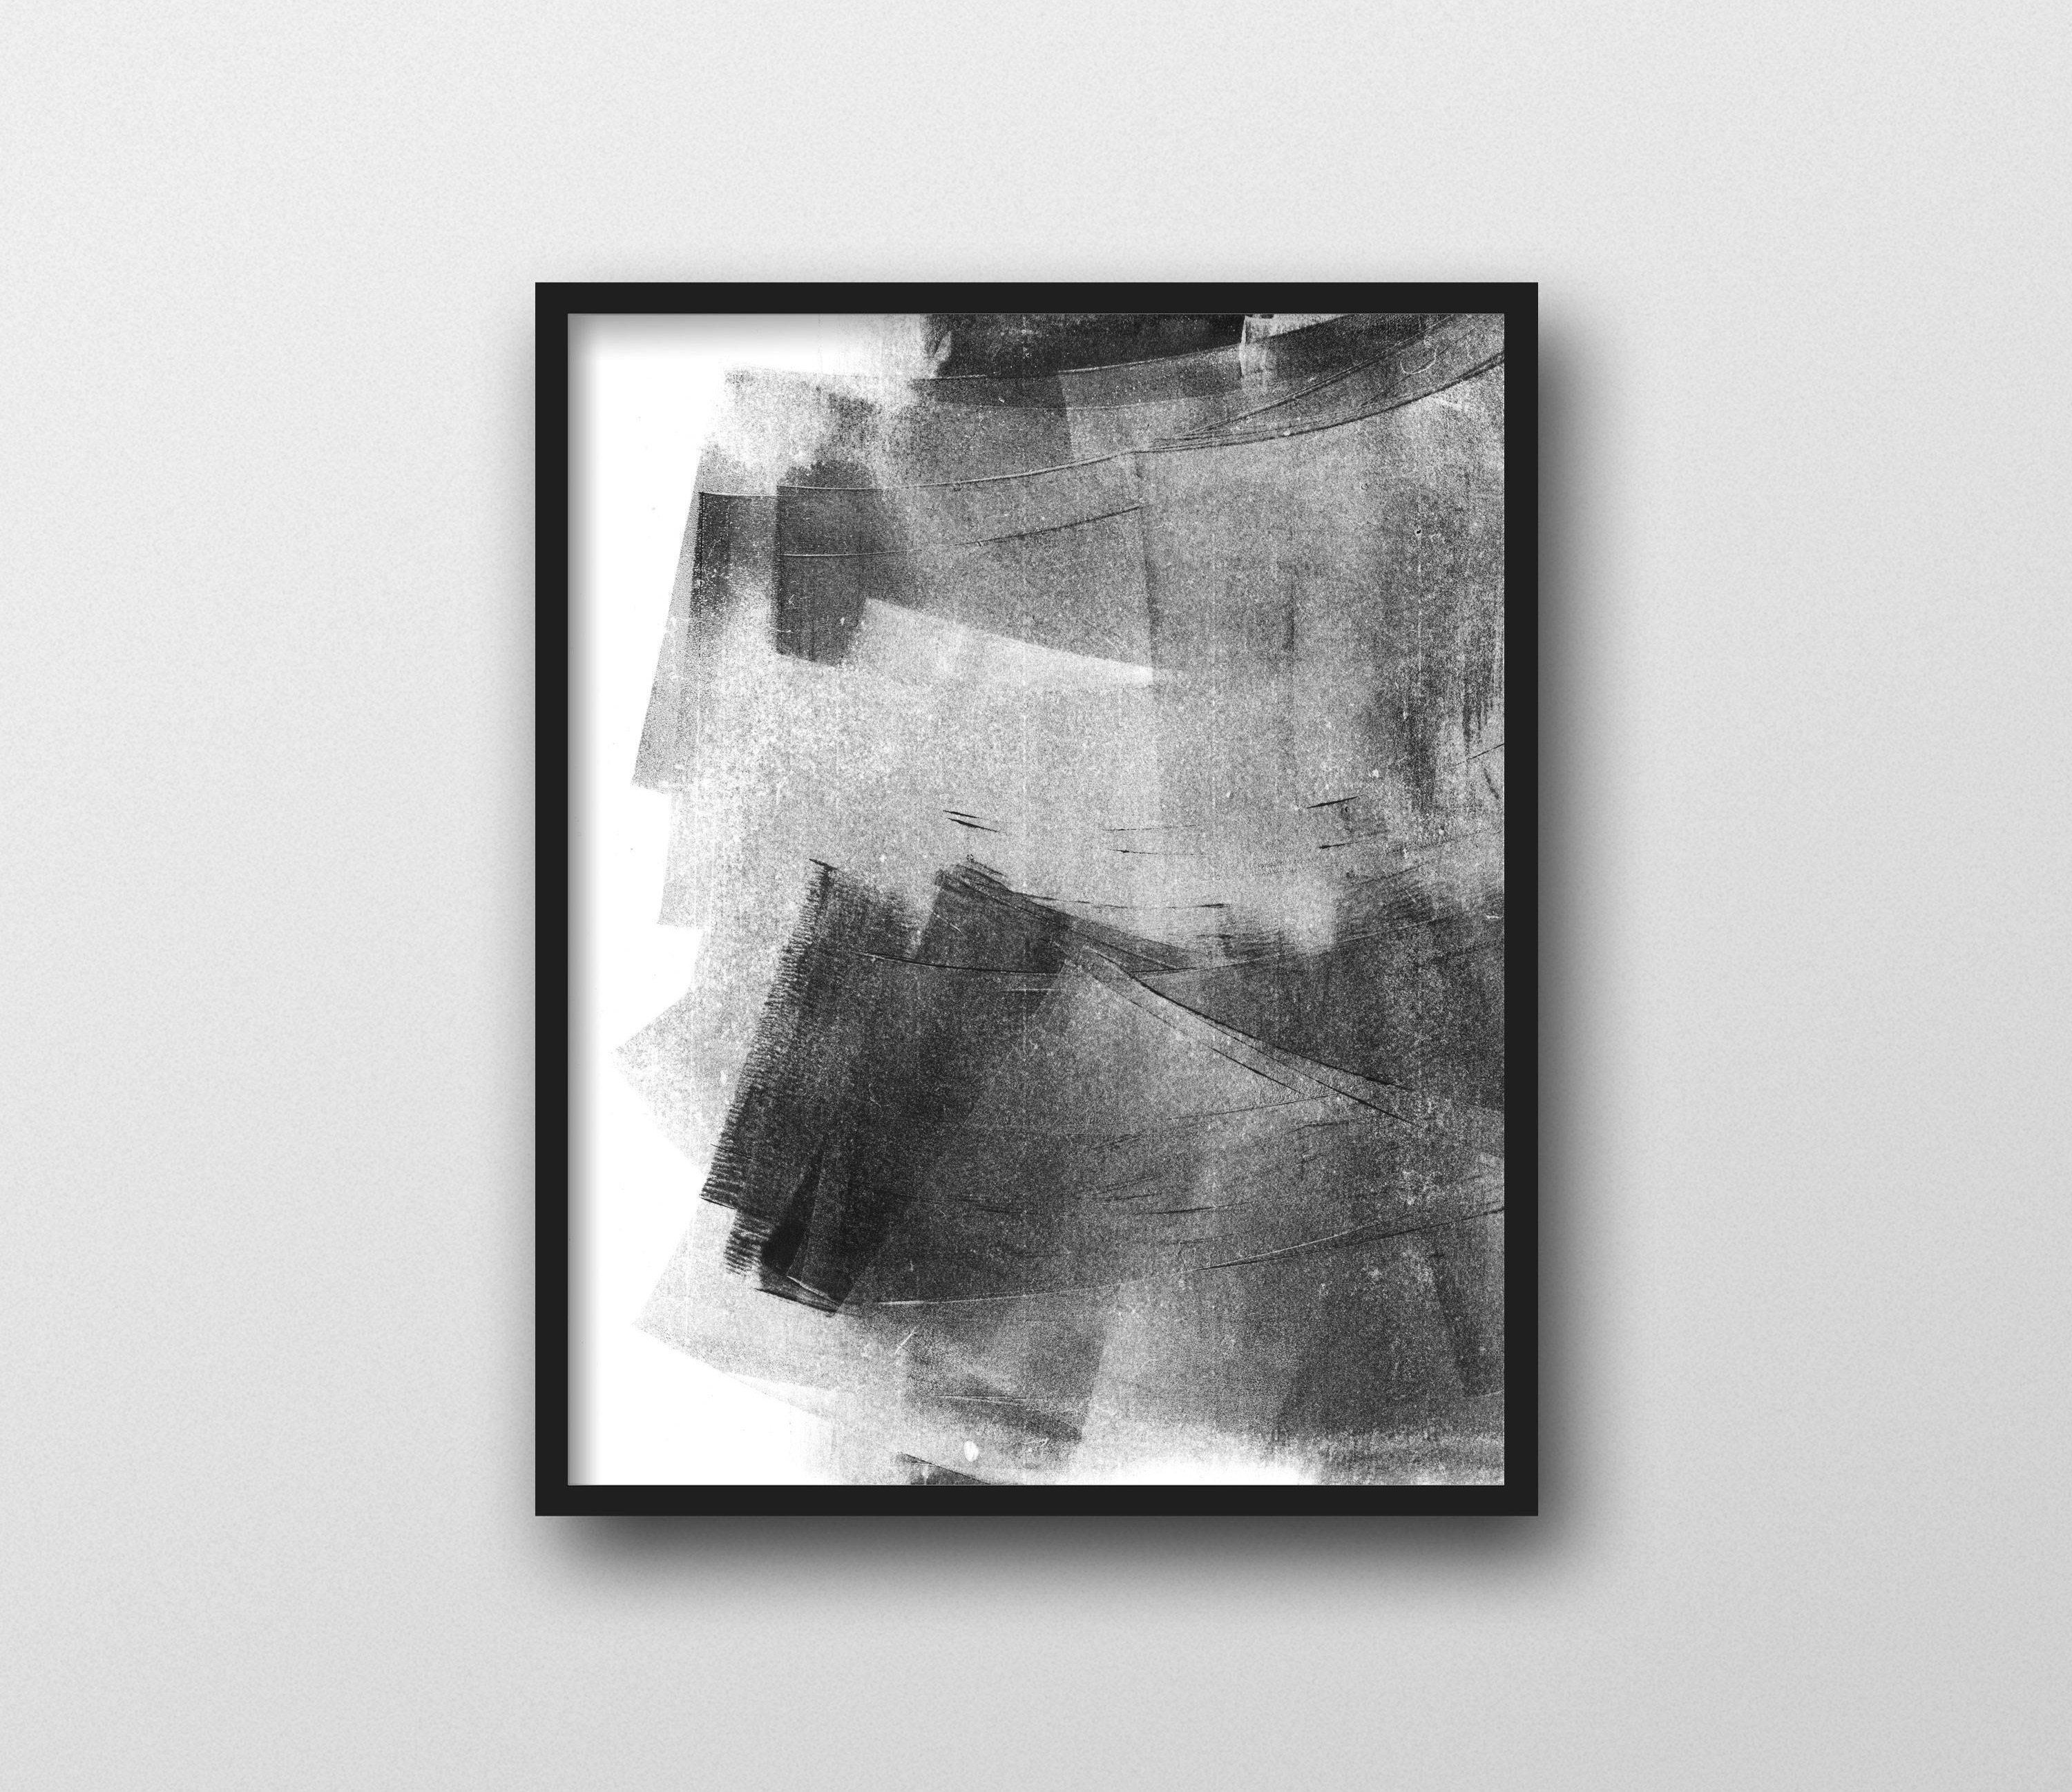 Abstract Art, Black and White Wall Art, Minimalist